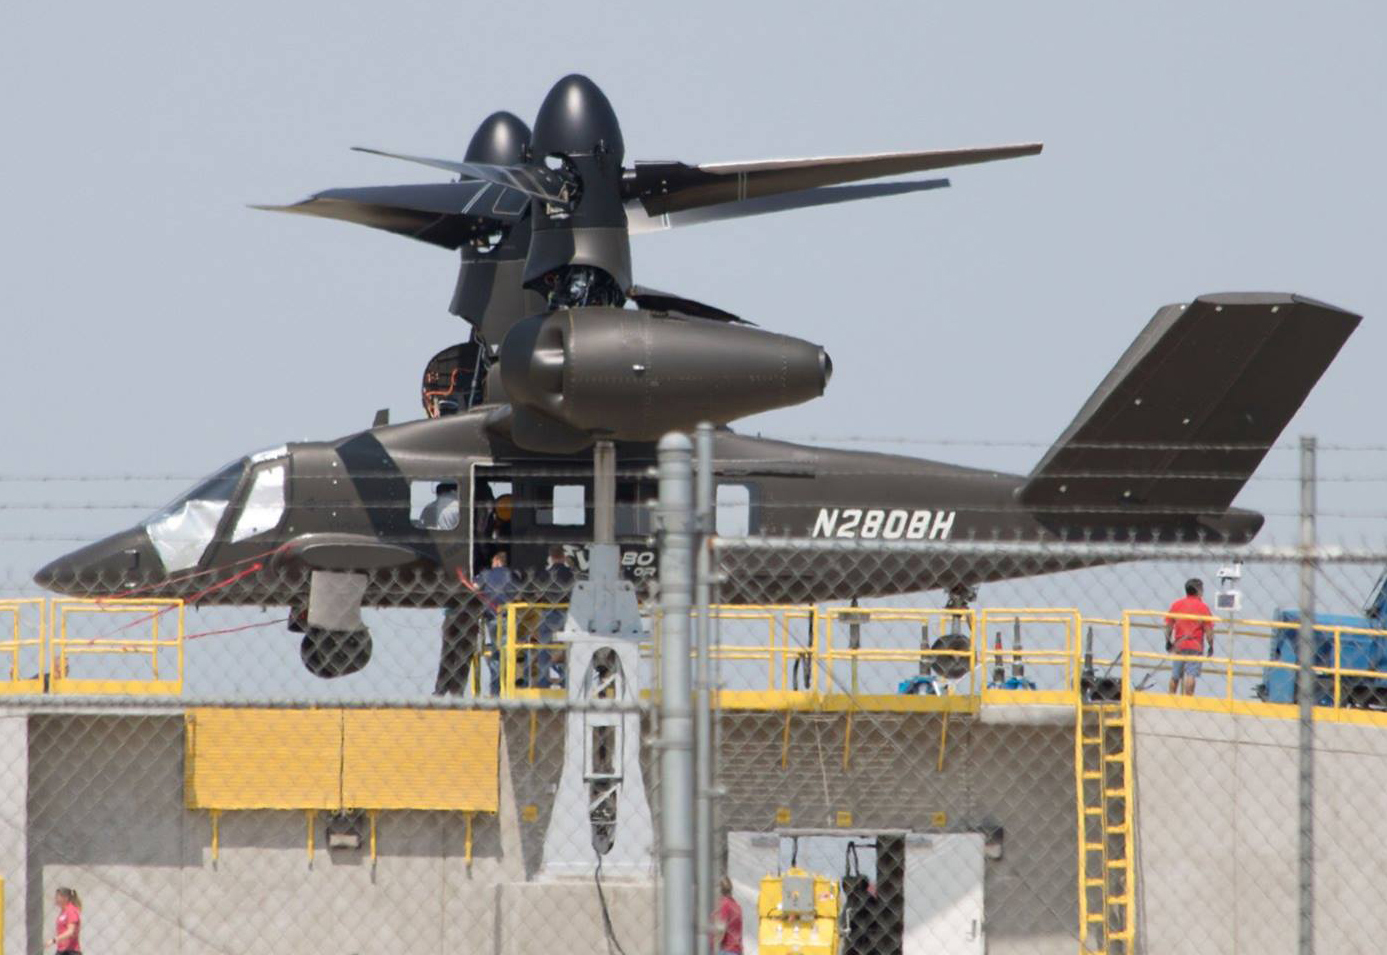 v for valor Bell helicopter announced that its v-280 valor has achieved first flight it is  designed to revolutionize vertical lift for the us army.